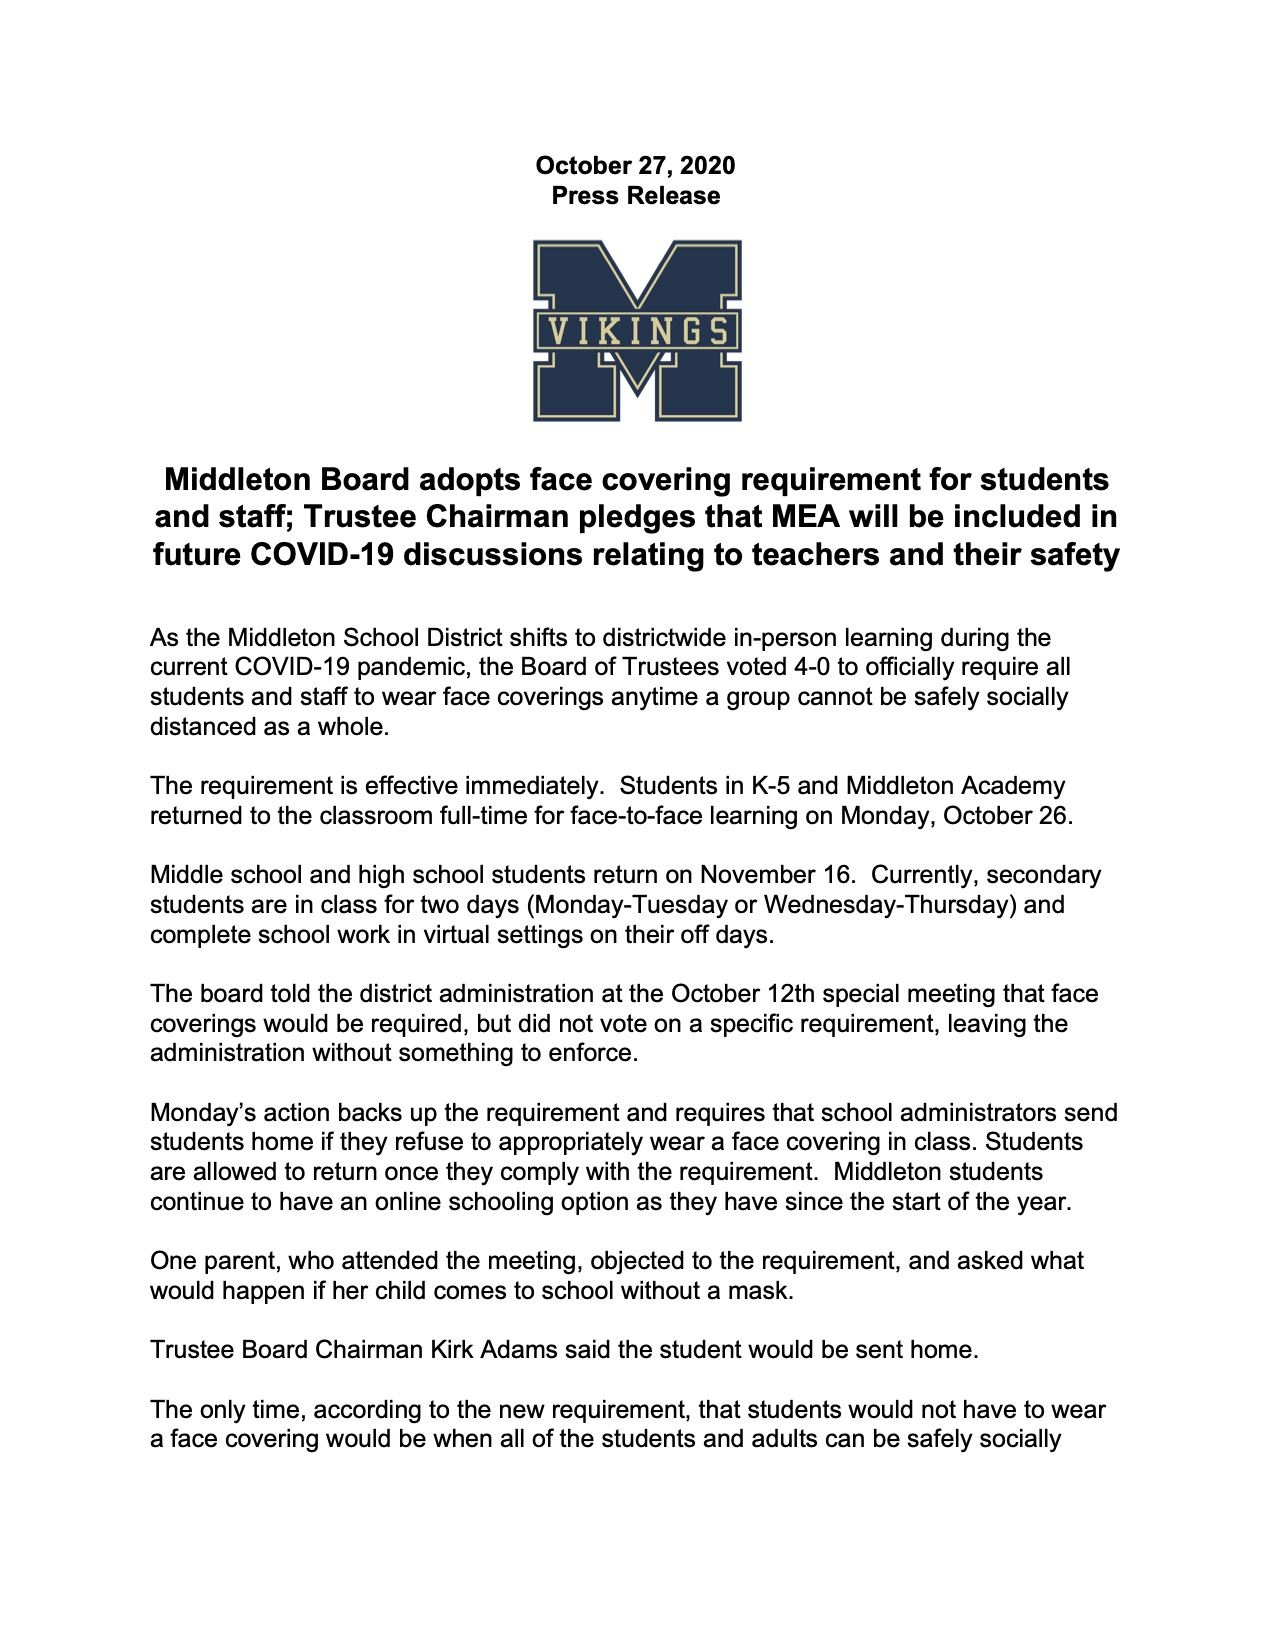 Press Release: Board adopts face covering requirement for students and staff